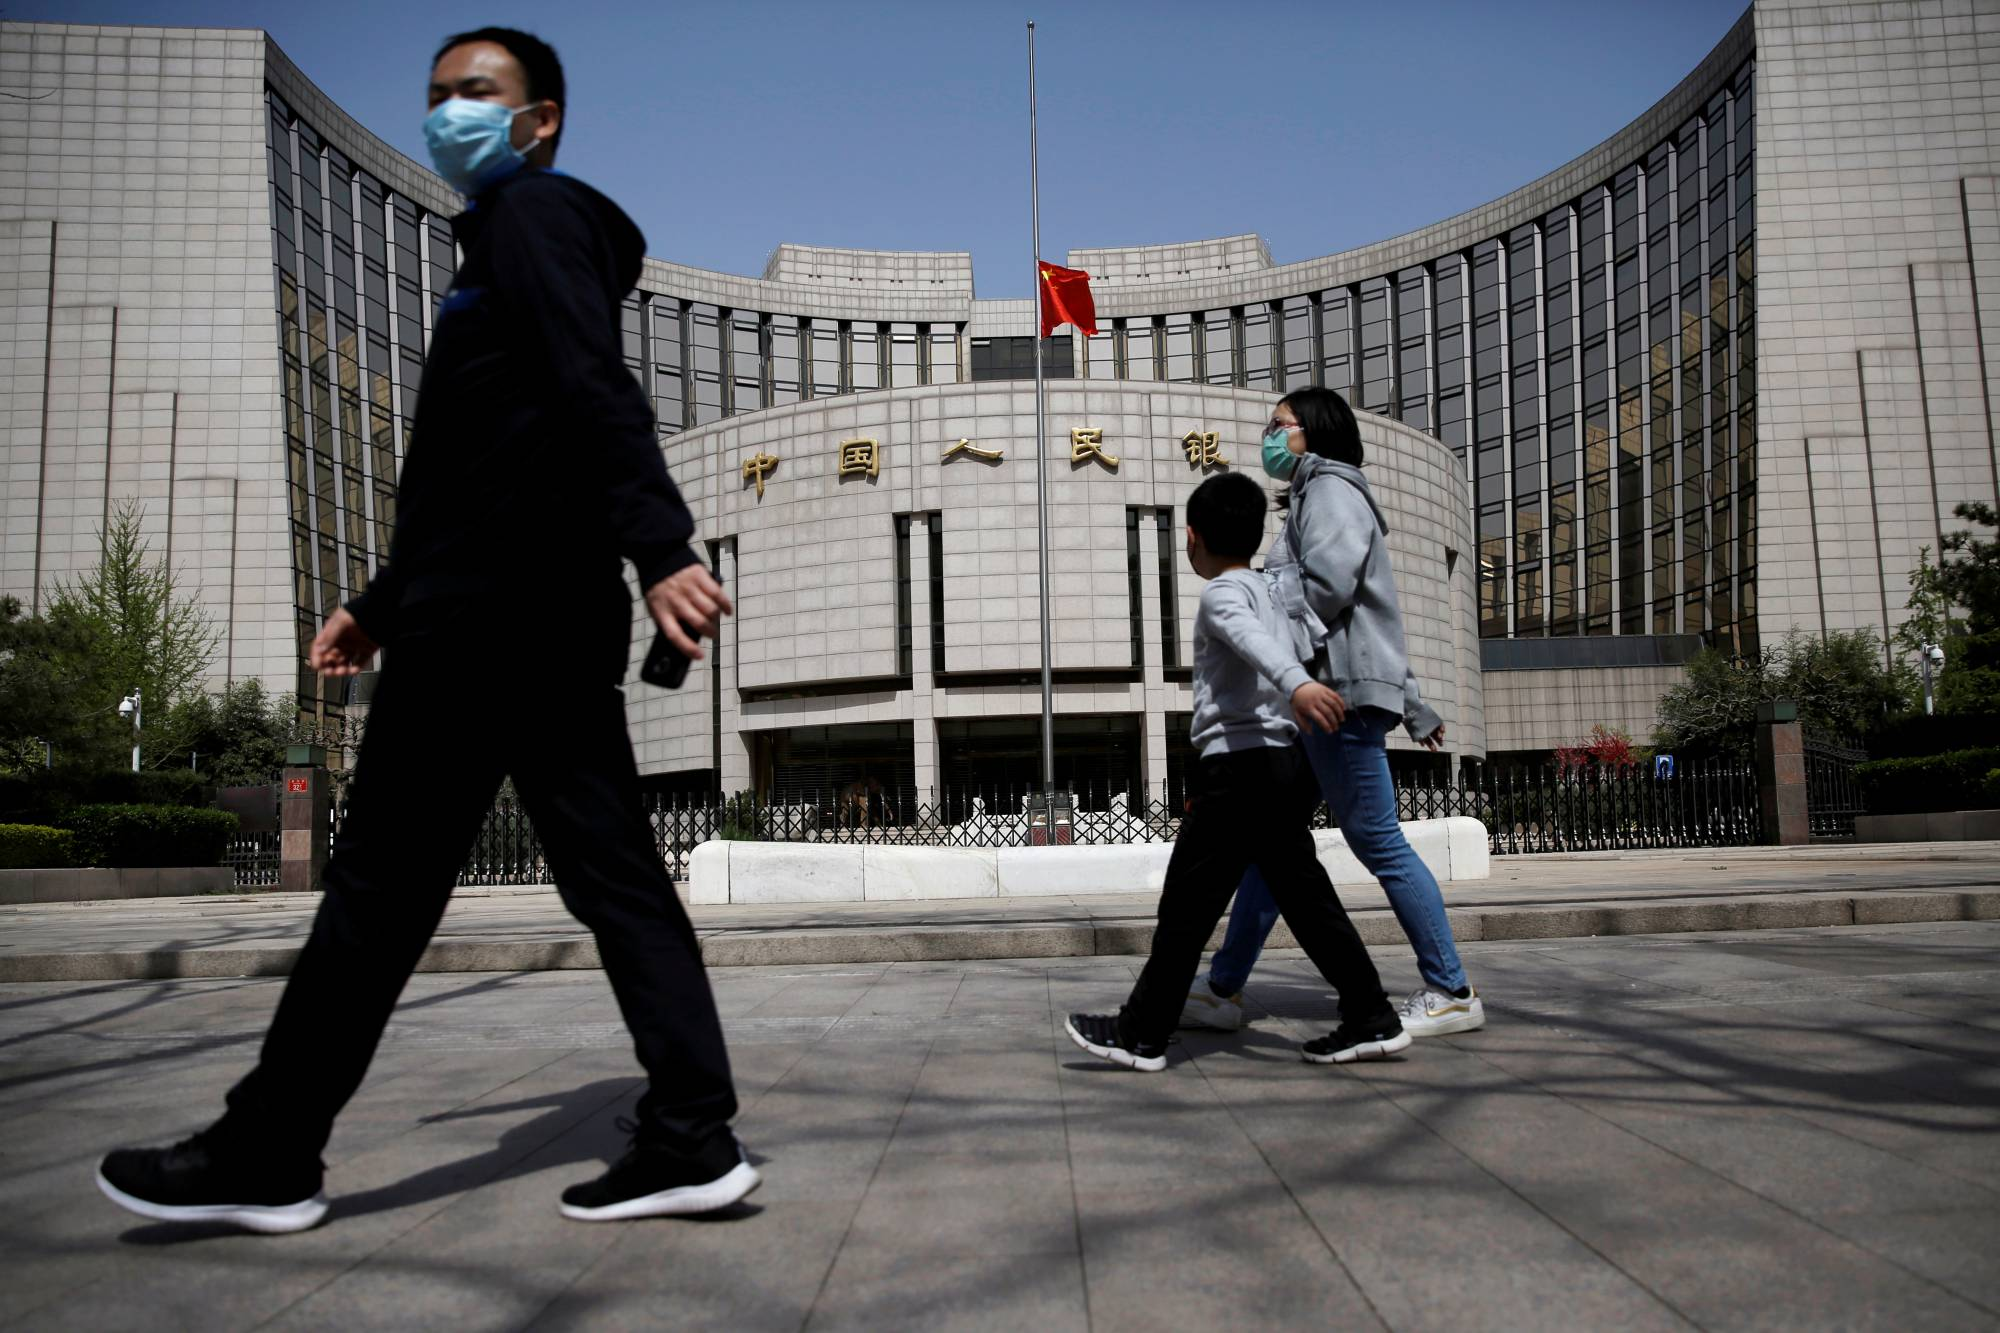 People walk past the headquarters of the People's Bank of China in early April. Just since the past month, worried savers in China have descended on three banks to withdraw funds amid rumors of cash shortages that were later dismissed as false.   | REUTERS